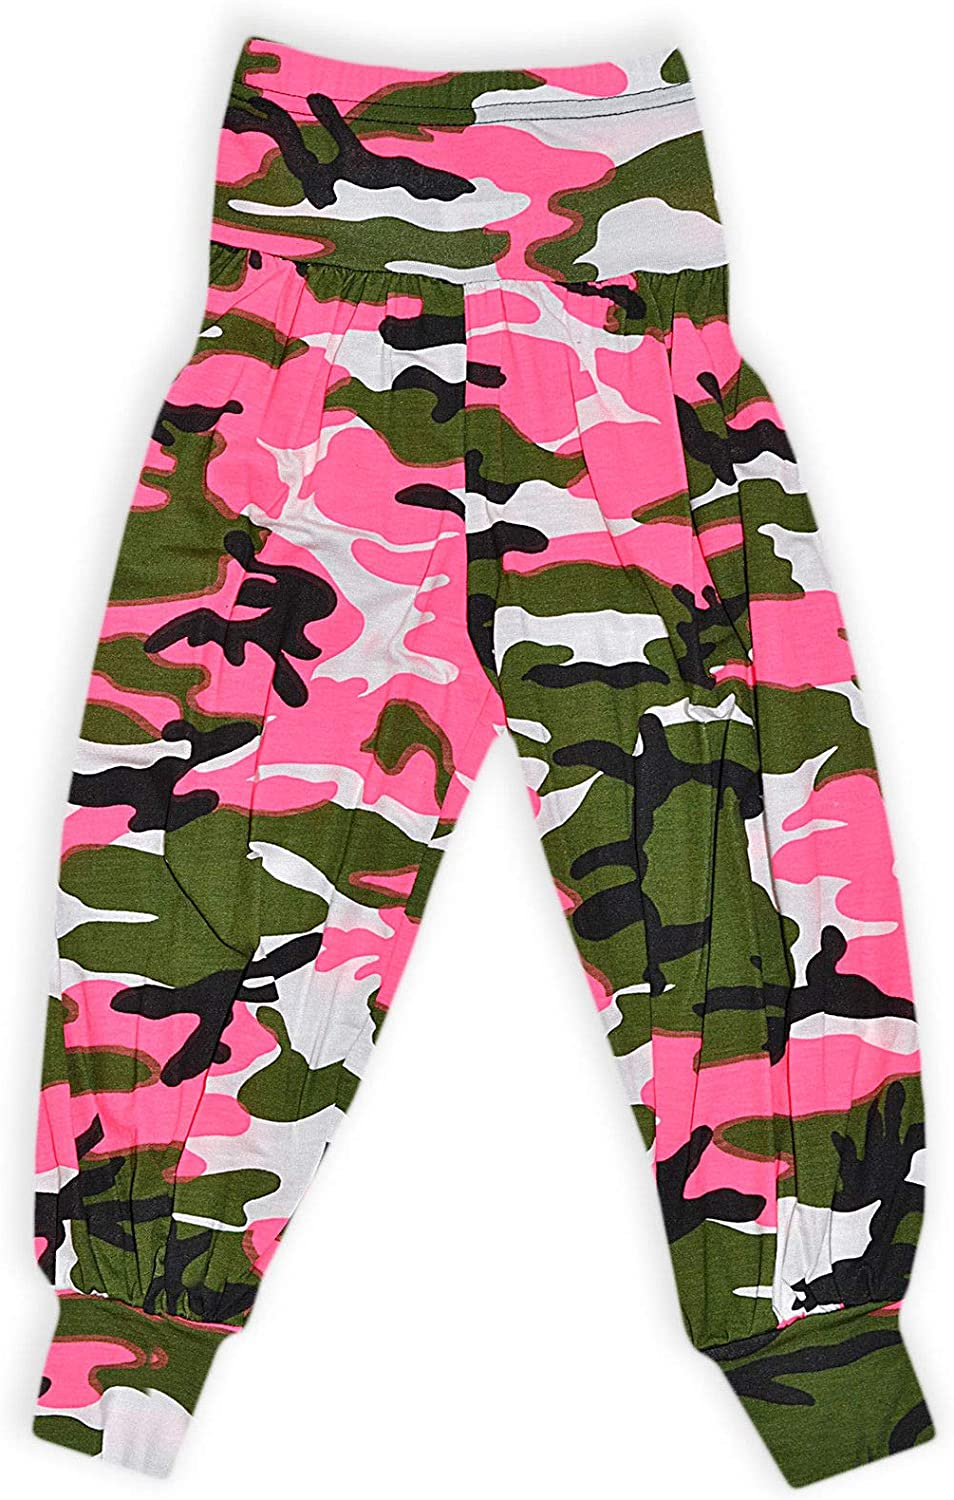 jolly rascals Girls Camo Print Harem Trousers Kids Costume Pants New Child Age 7-13 Years